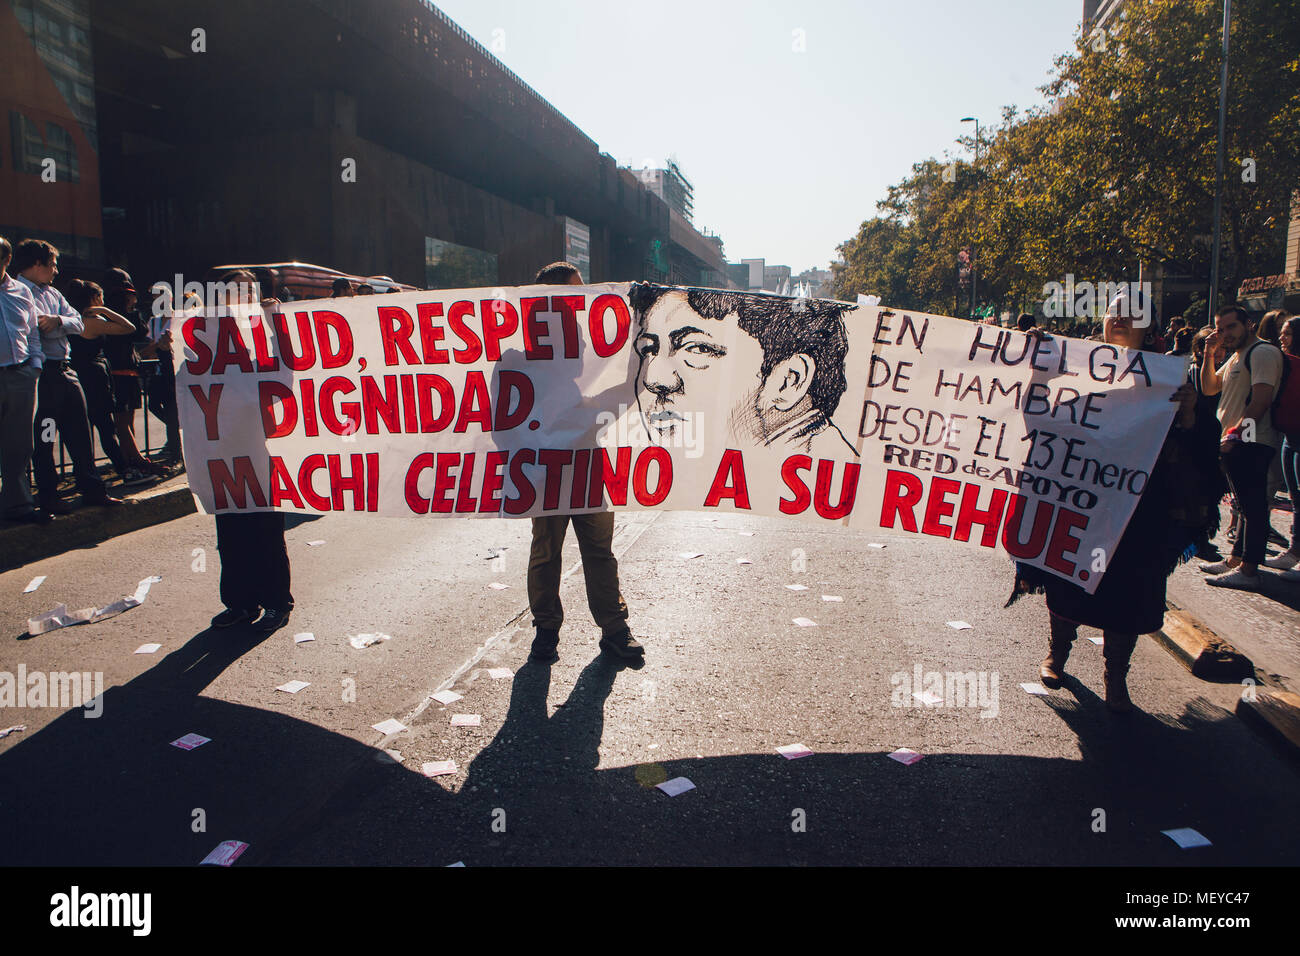 Santiago, Chile - April 19, 2018: Banner in favor of 'Machi' Celestino Cordova, Mapuche indigenous leader, who is hunger strike. Chileans marched thro - Stock Image